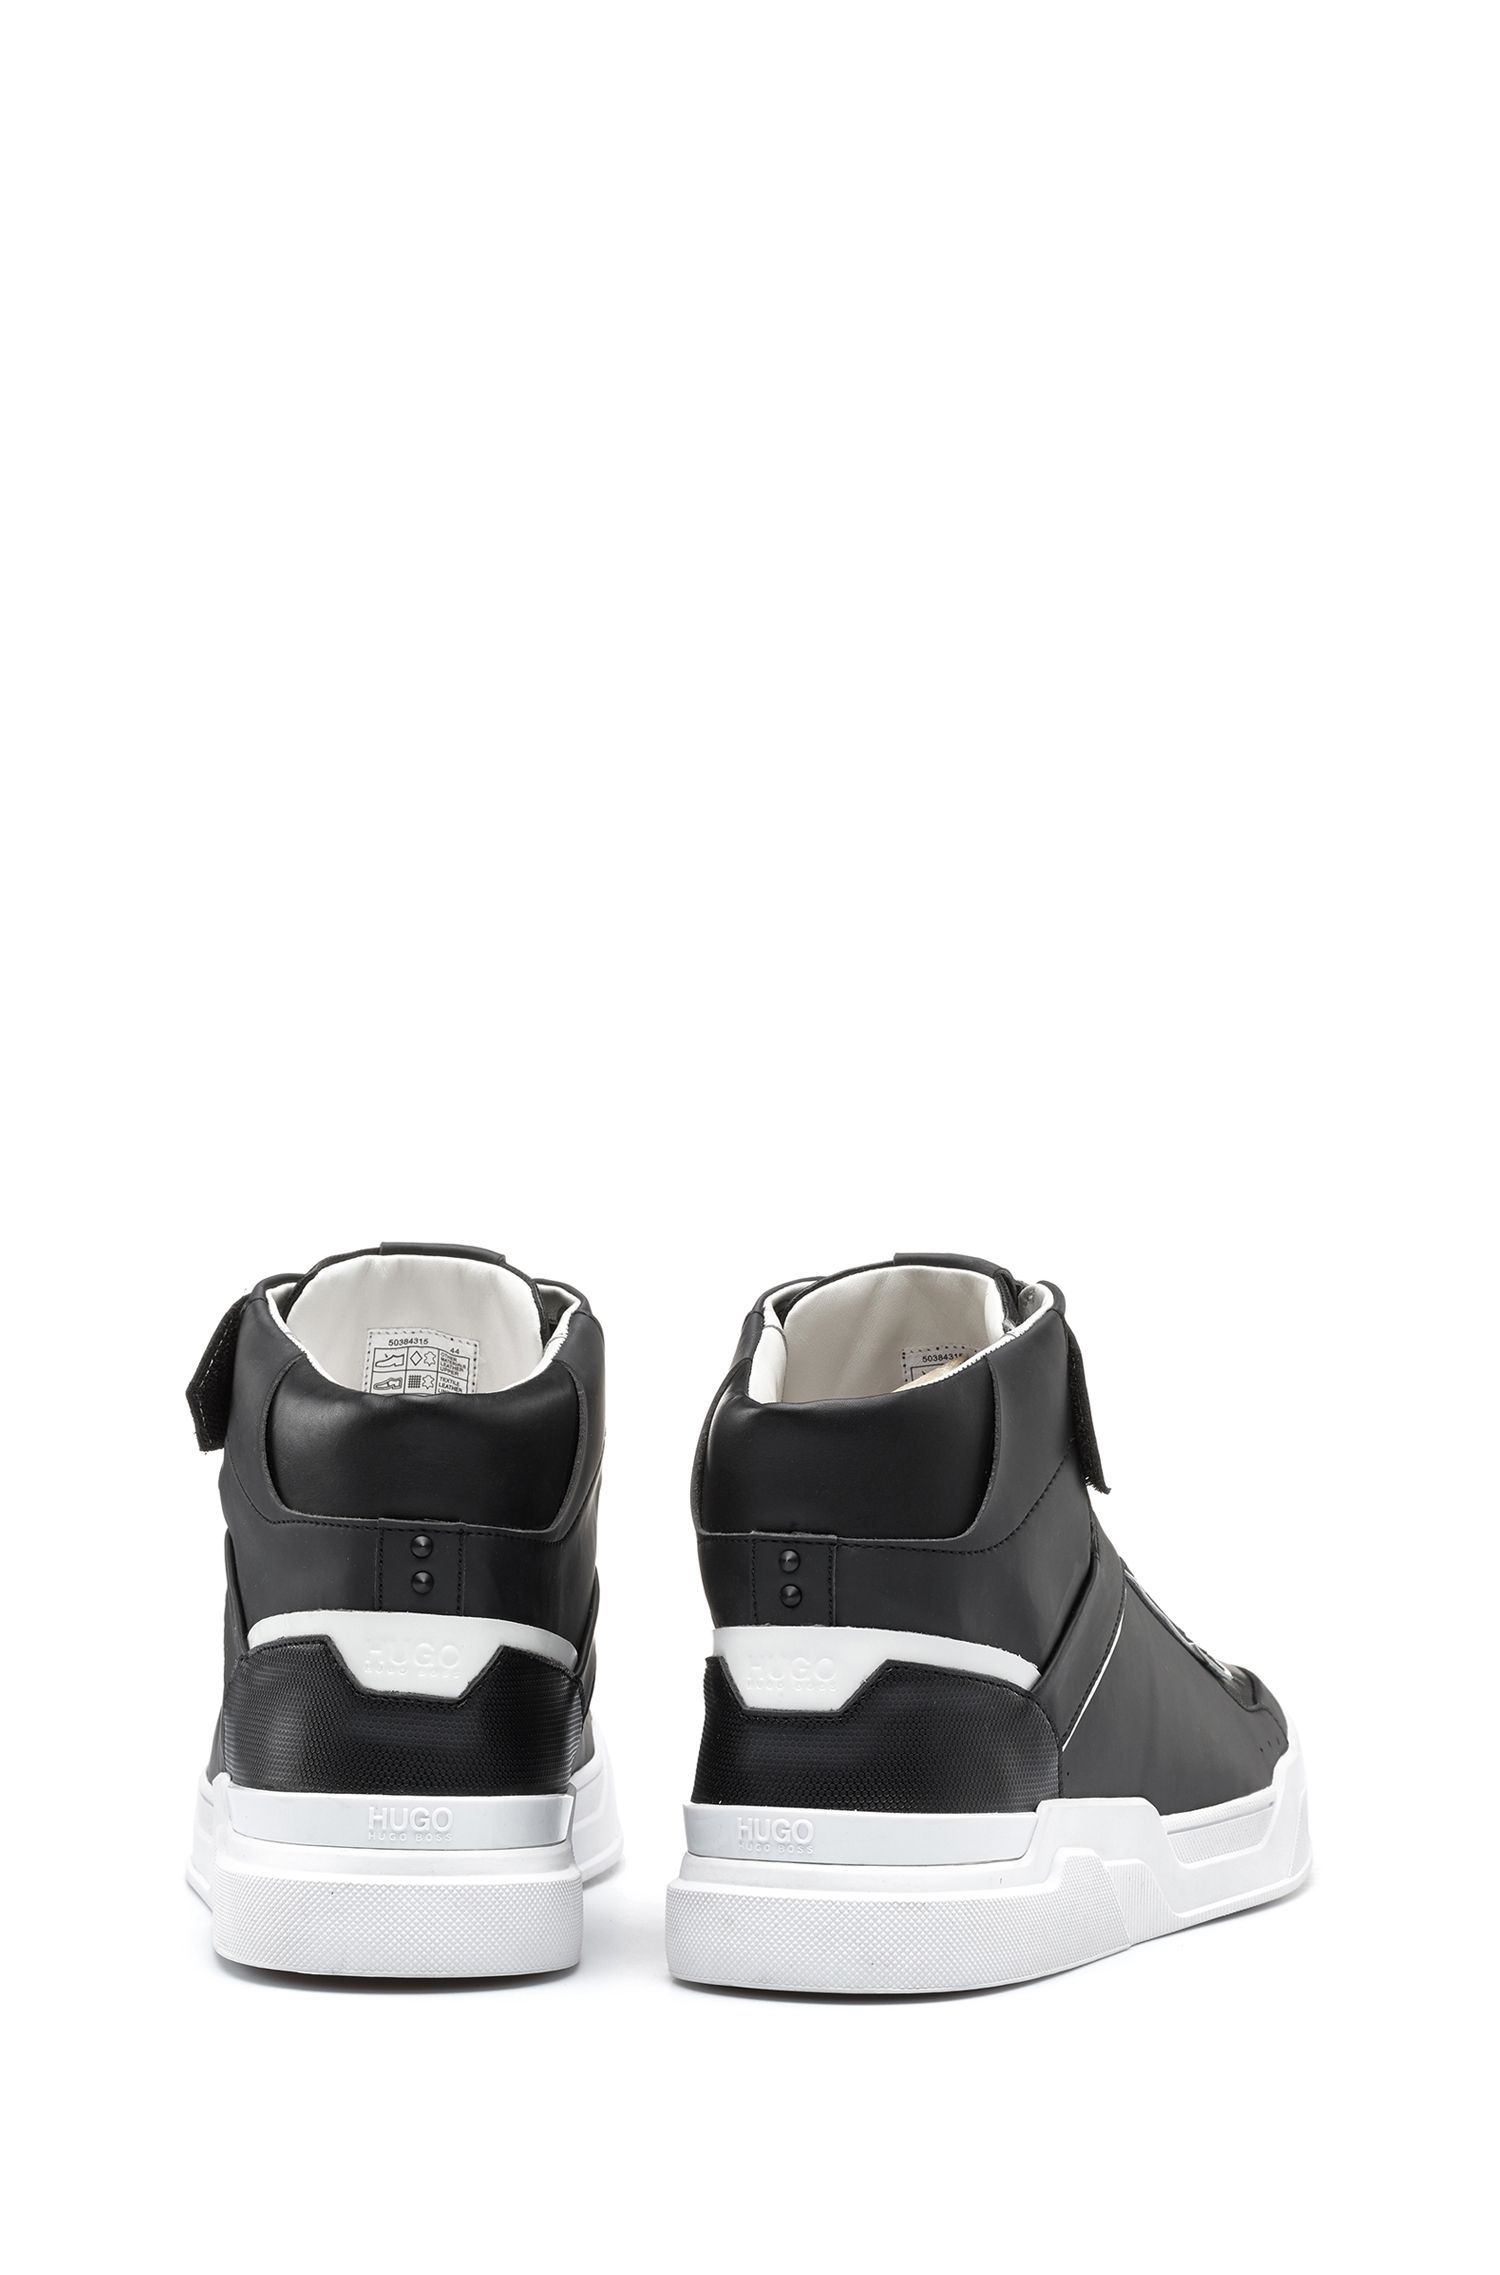 Reverse-logo high-top trainers with nappa leather and embossed technical uppers